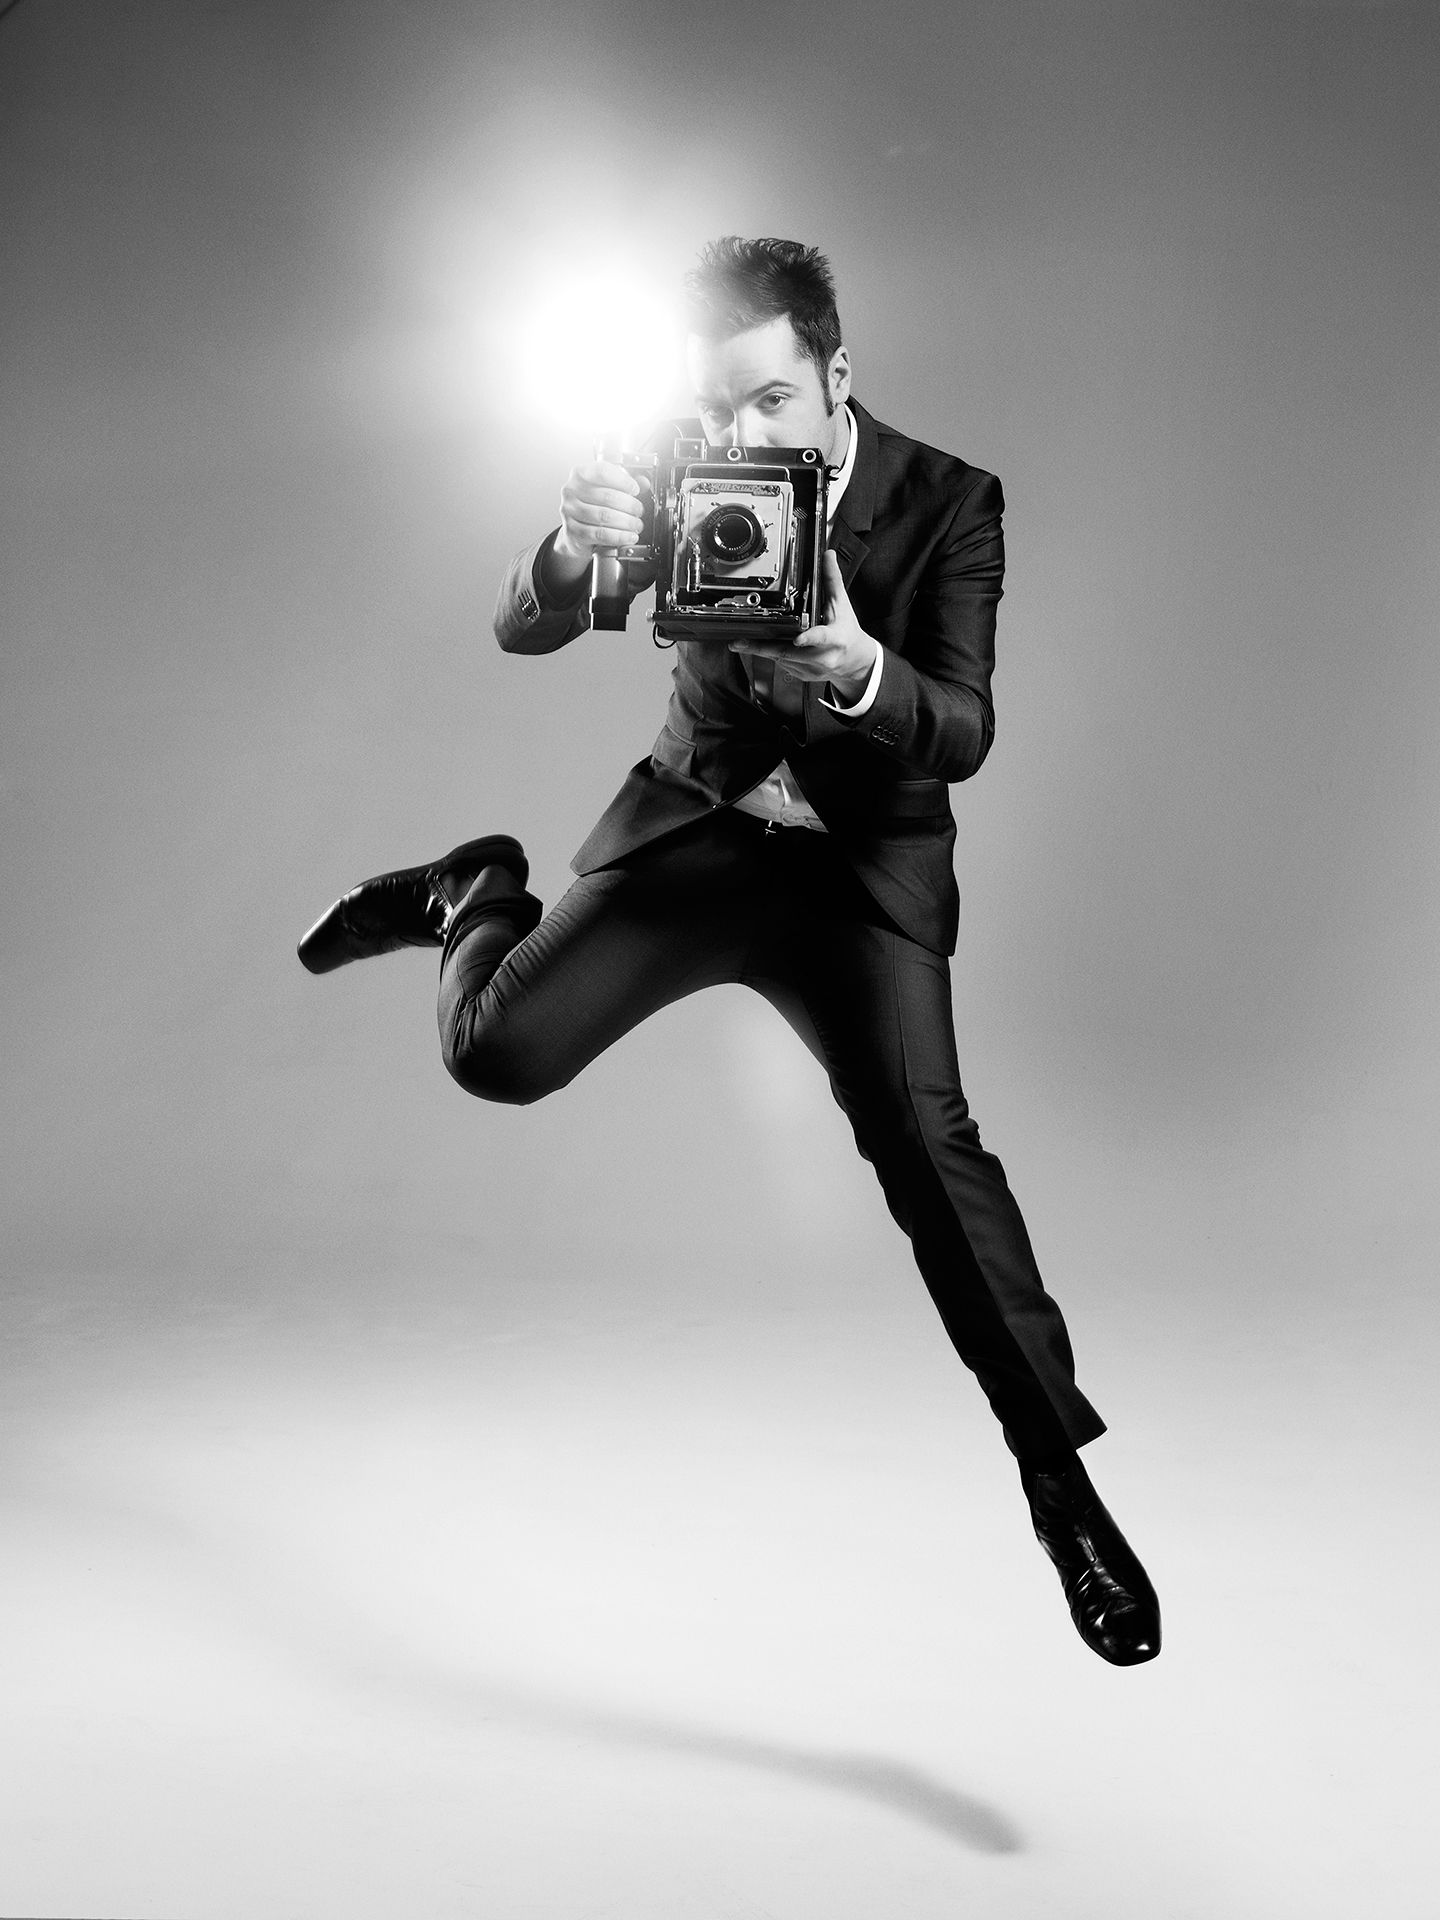 Dumas photographed jumping in the air by Jocelyn Michel for JUMP personal series